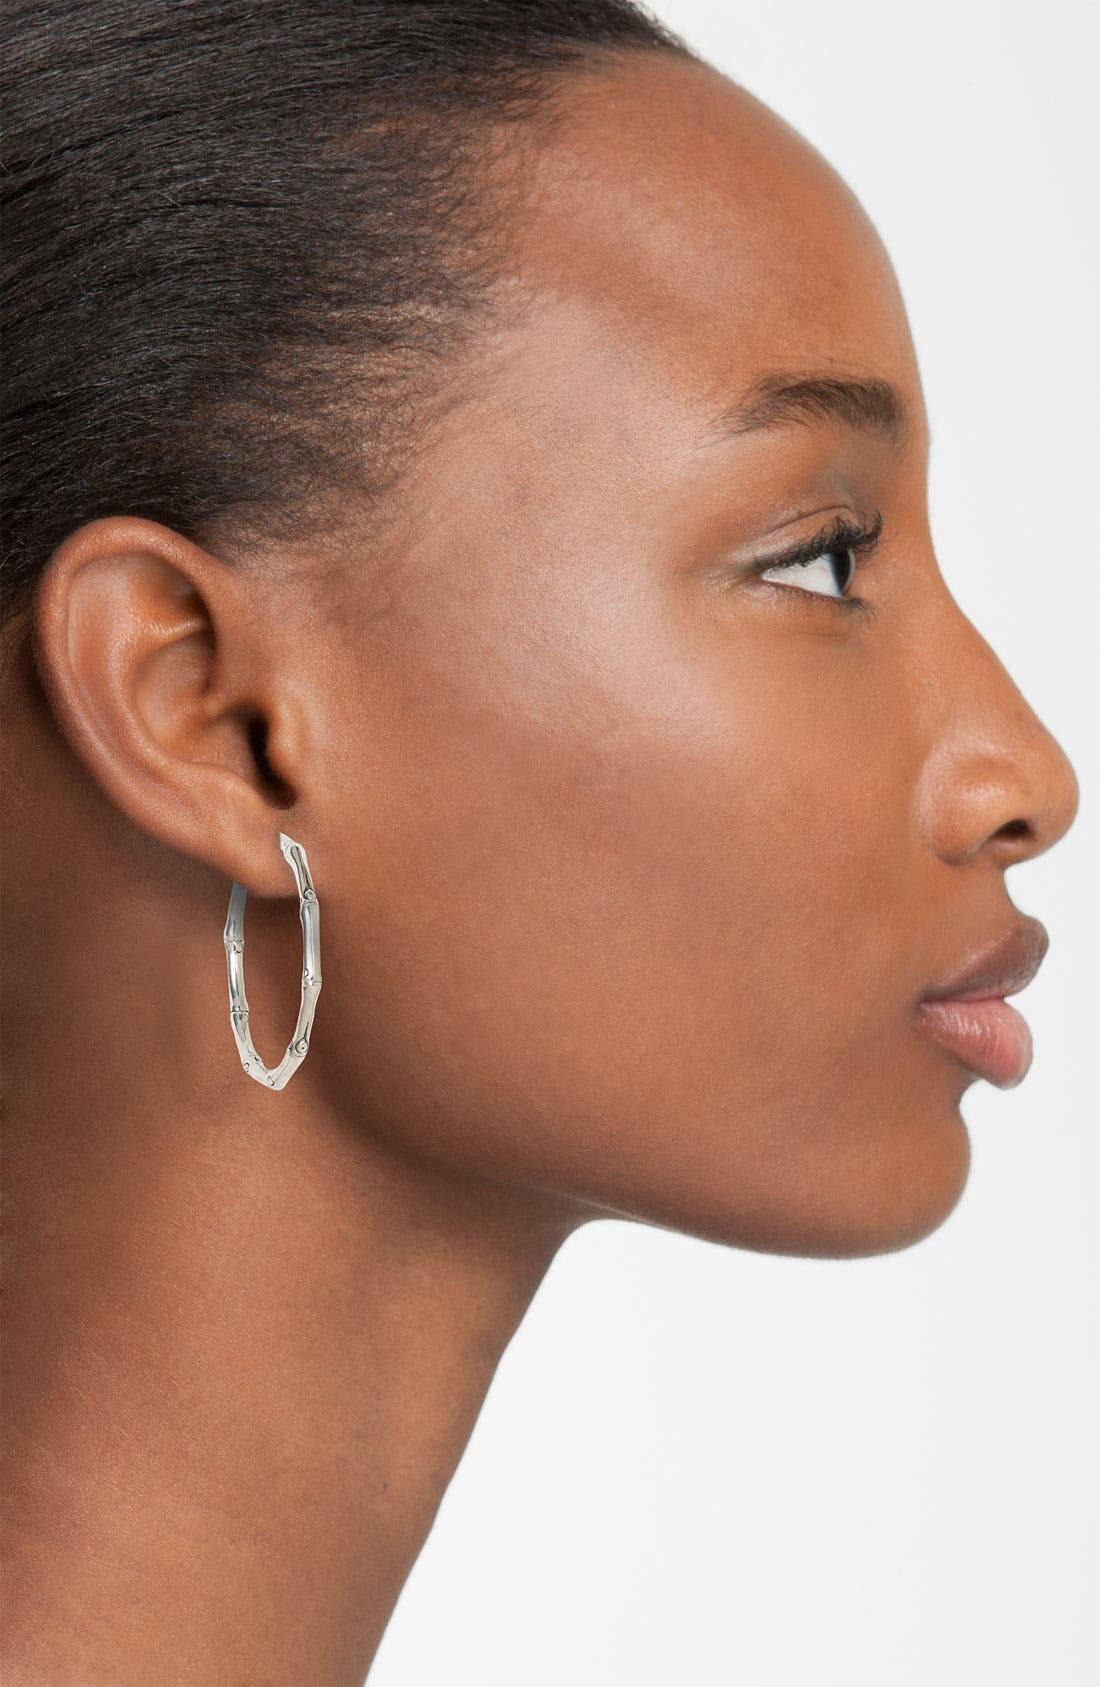 JOHN HARDY,                             'Bamboo' Medium Hoop Earrings,                             Alternate thumbnail 2, color,                             STERLING SILVER